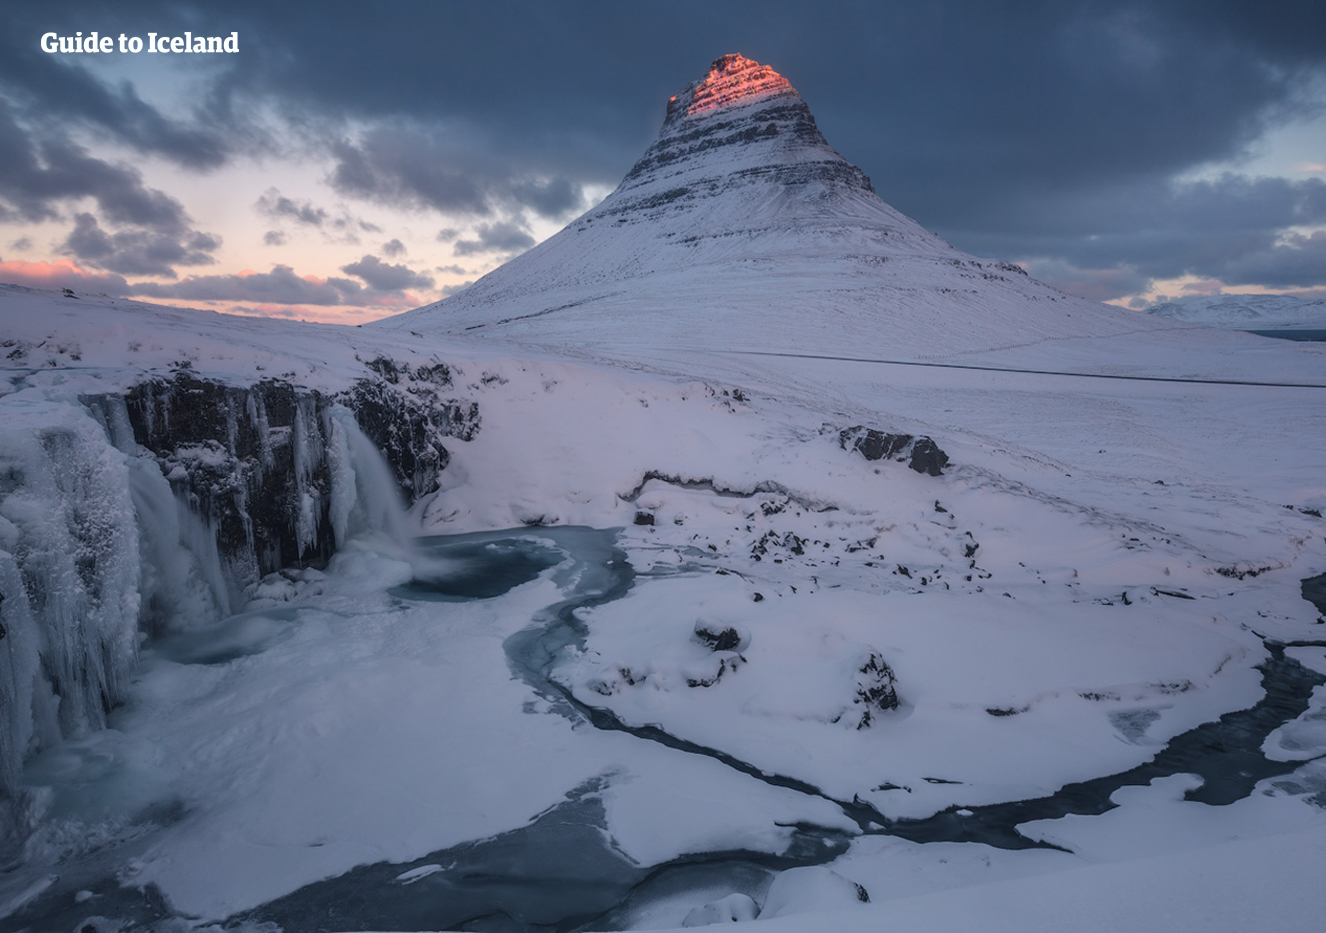 The Snæfellsnes Peninsula in Iceland is home to the mountains Kirkjufell, photographed here in winter.